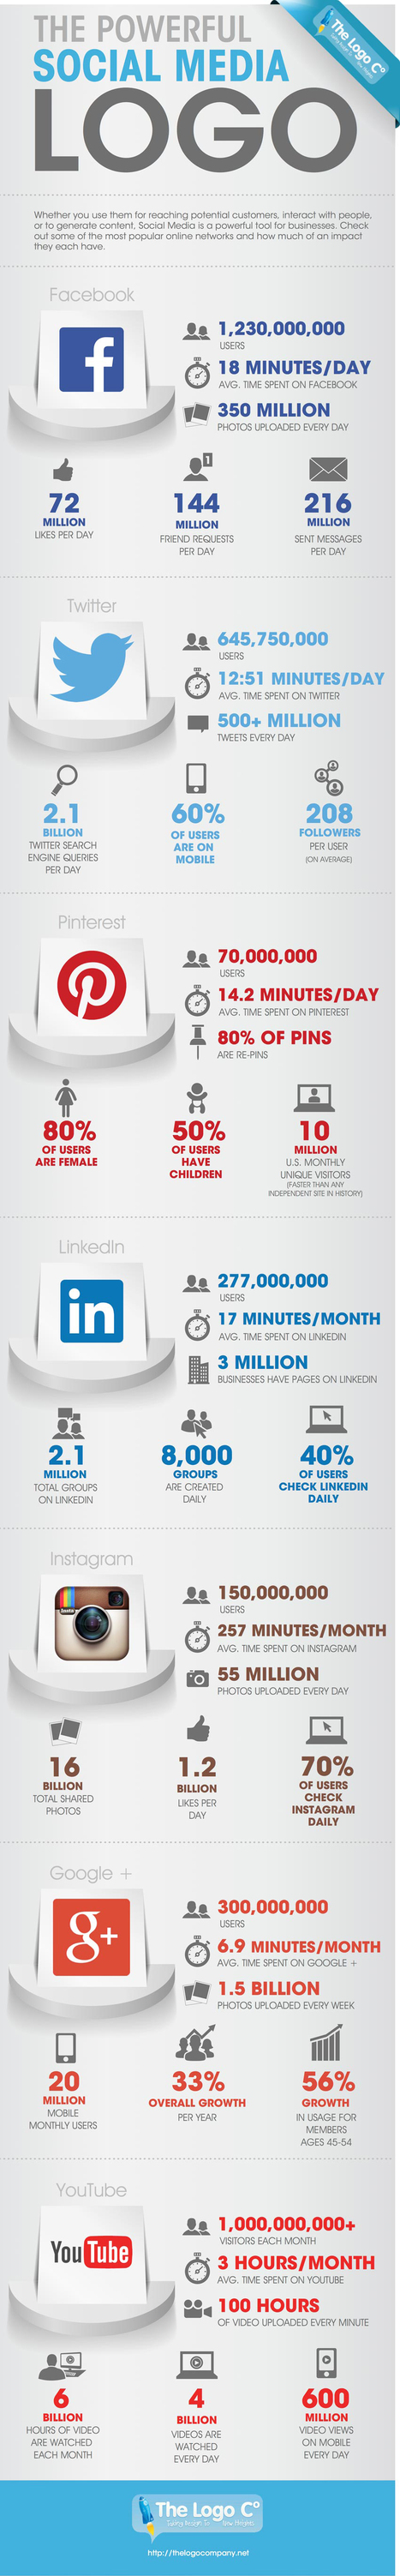 2014: The Numbers Behind Social Media [infographic] | visualizing social media | Scoop.it